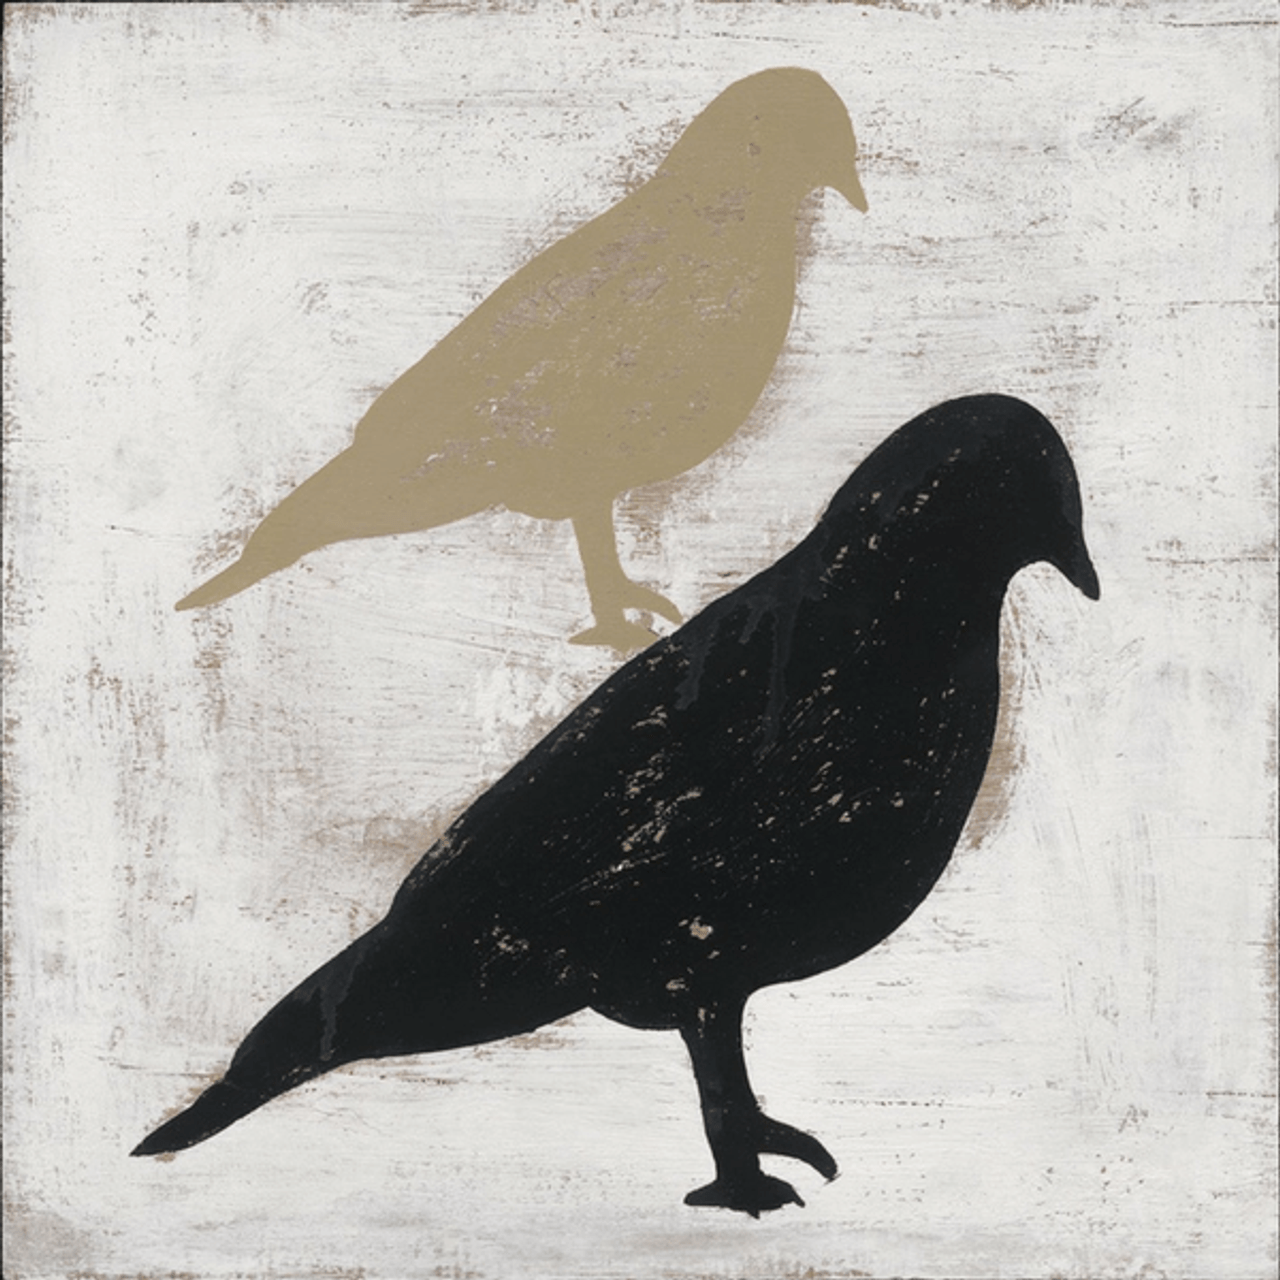 smaller cream bird stacked on top of a larger black bird on a cream background